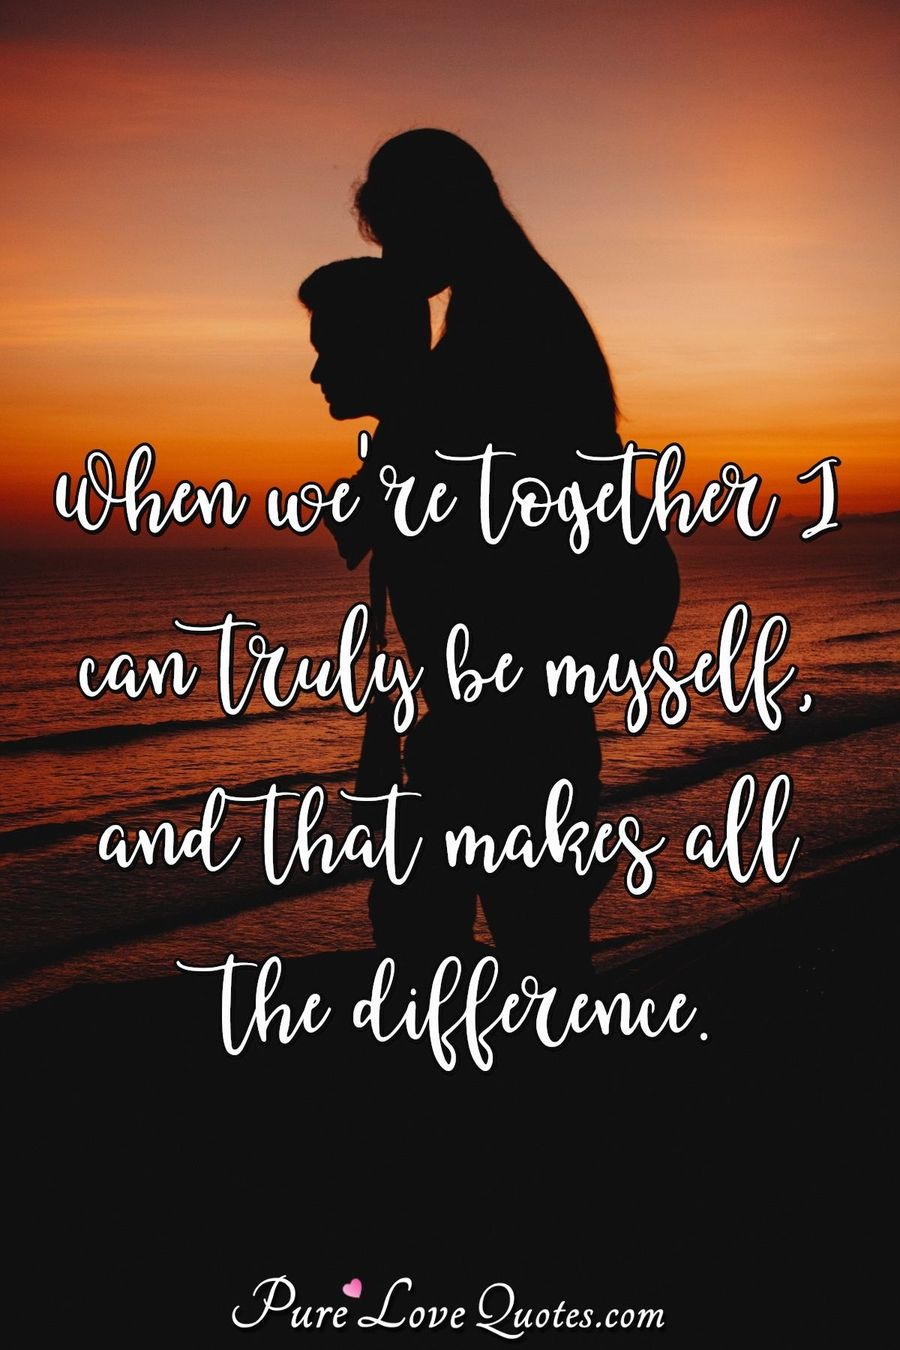 When we're together I can truly be myself, and that makes all the difference.